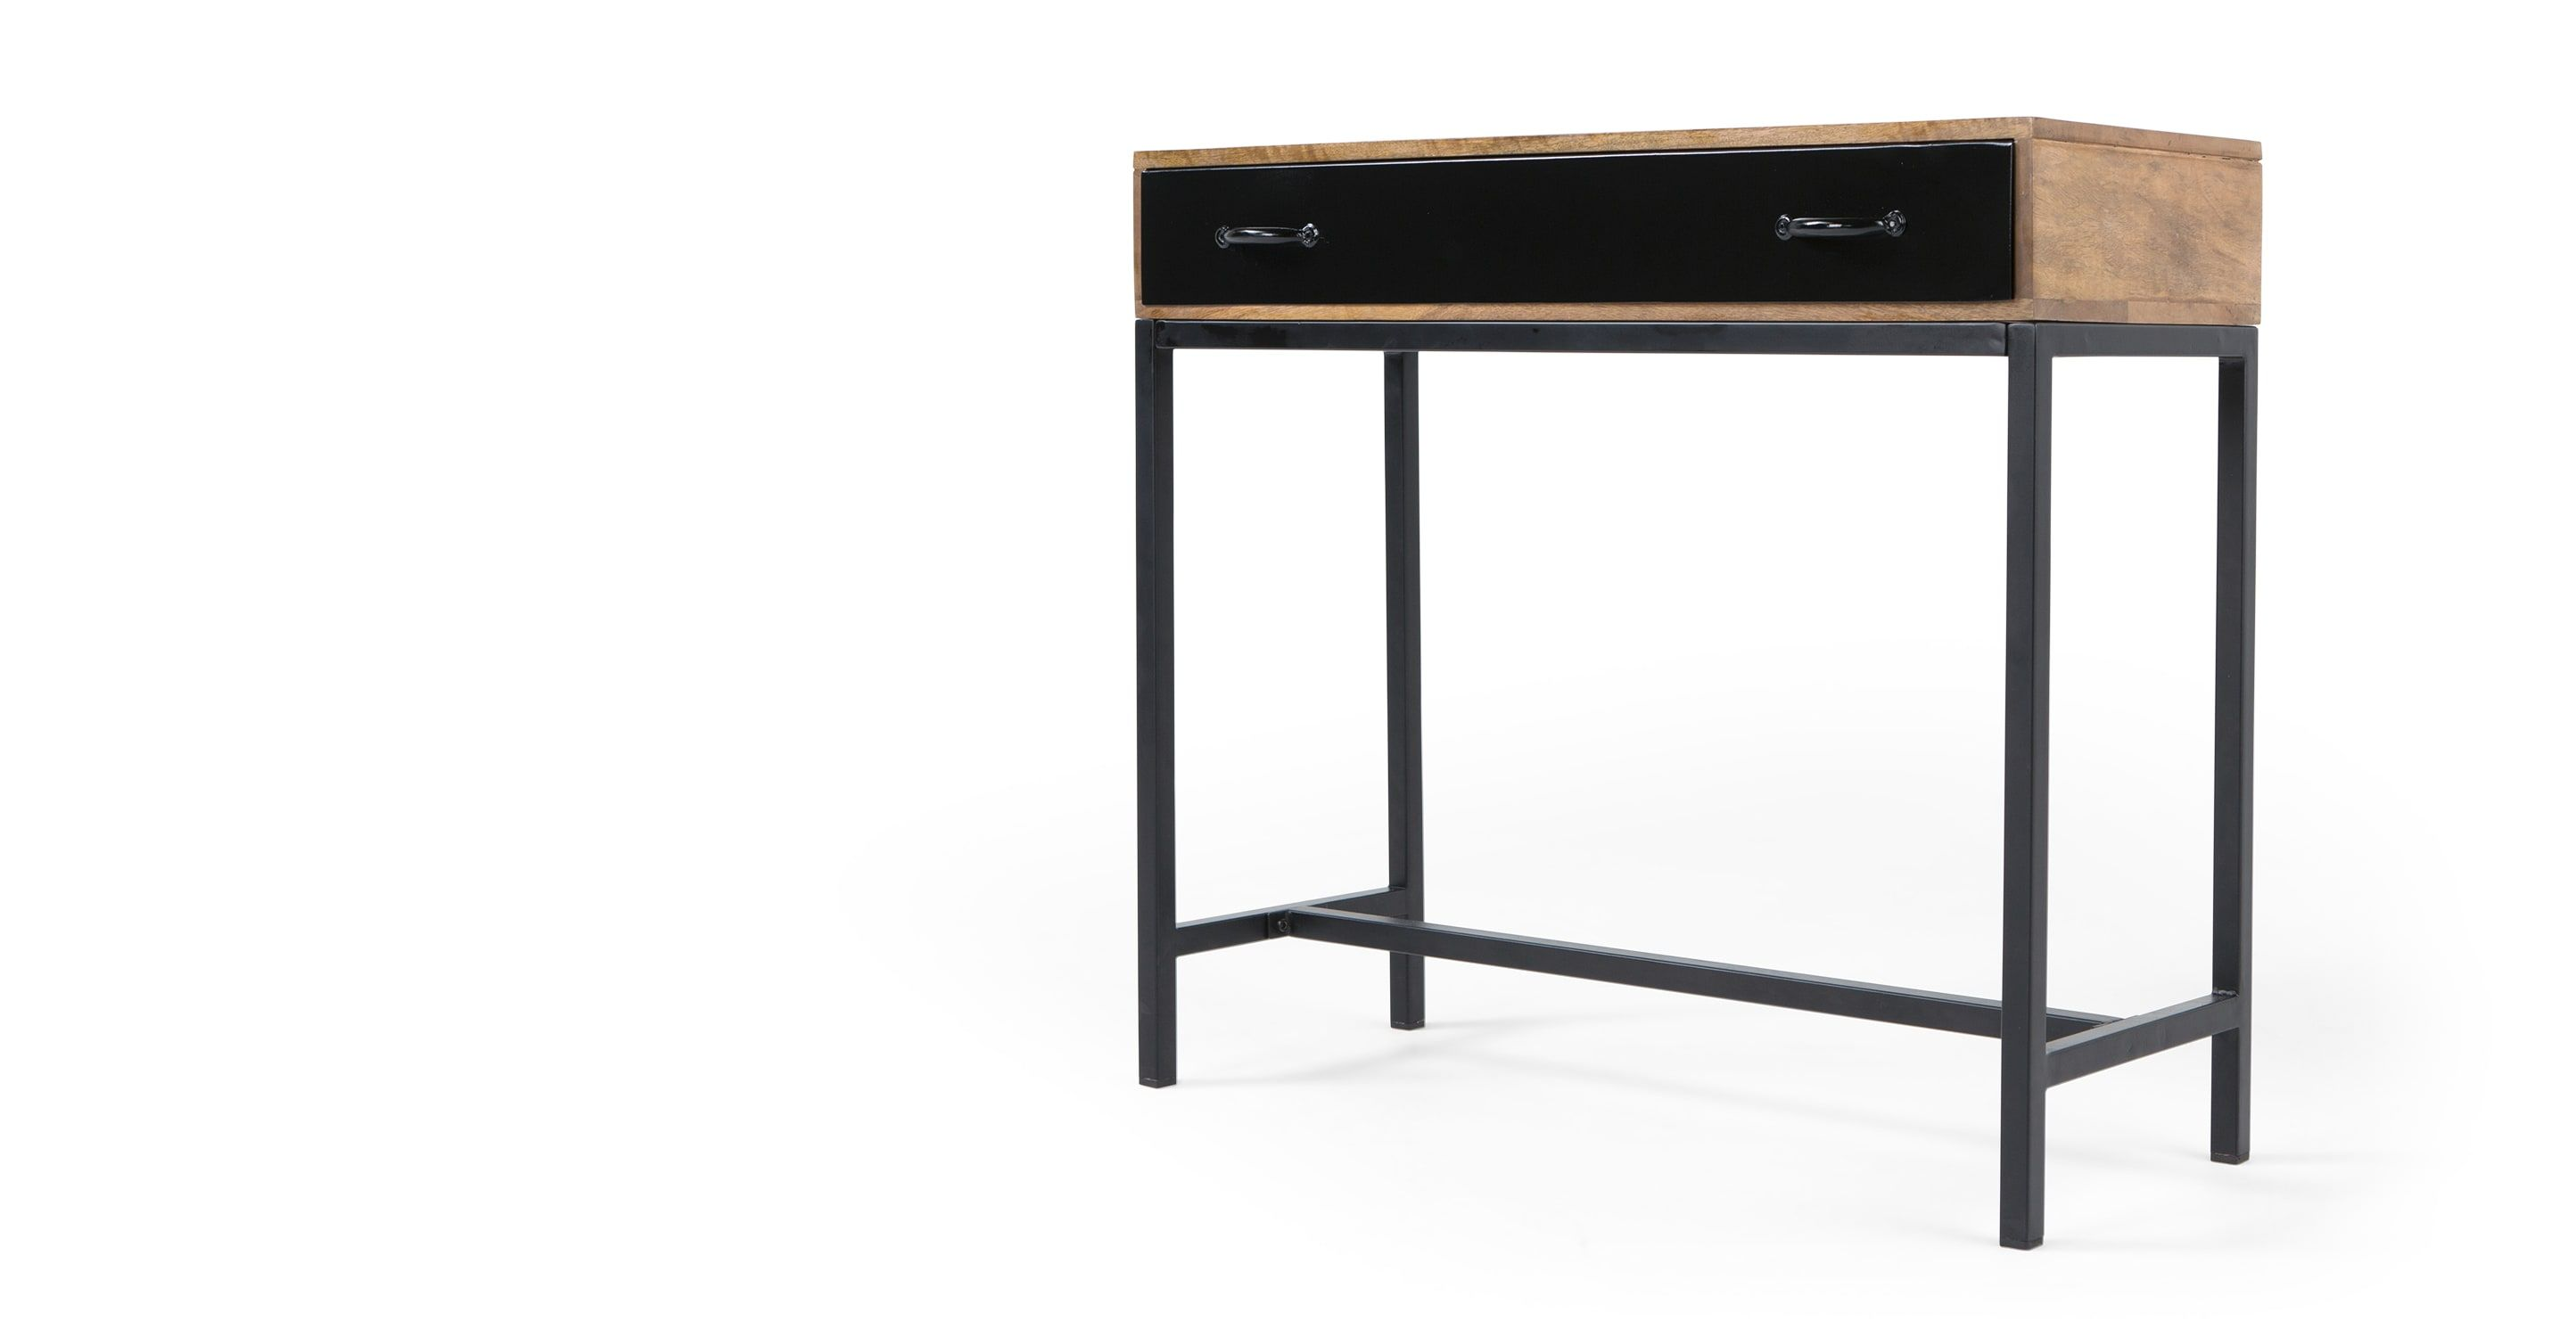 Lomond Console Table, Mango Wood and Black | Console tables ...